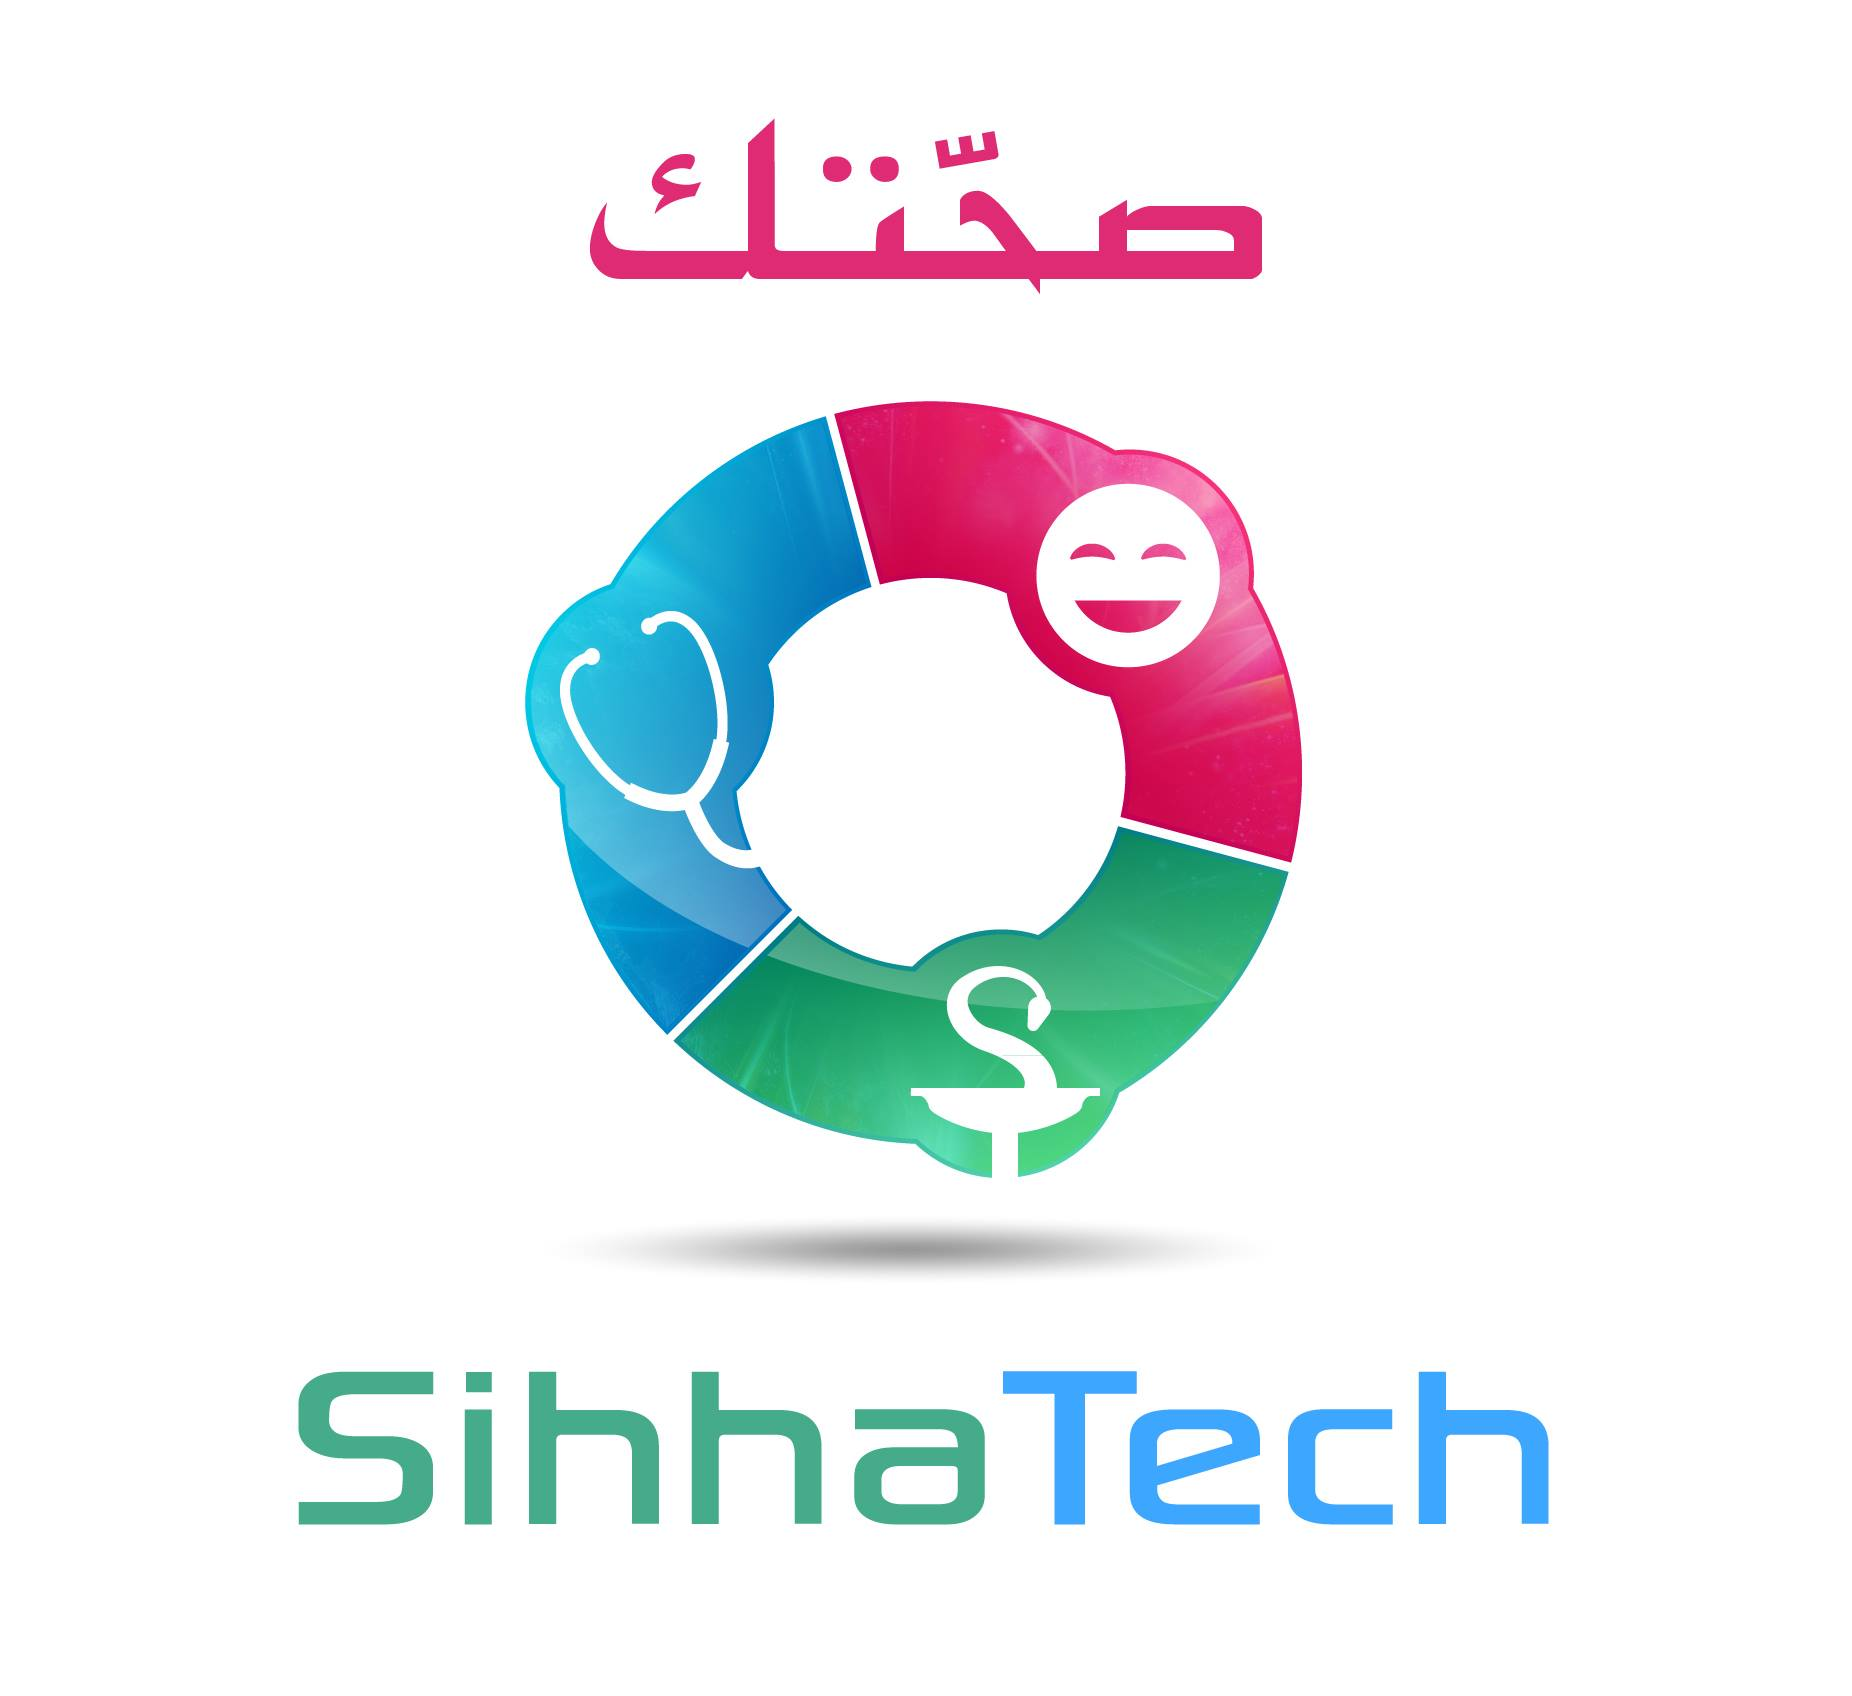 AFIND, Startup name: SihhaTech logo